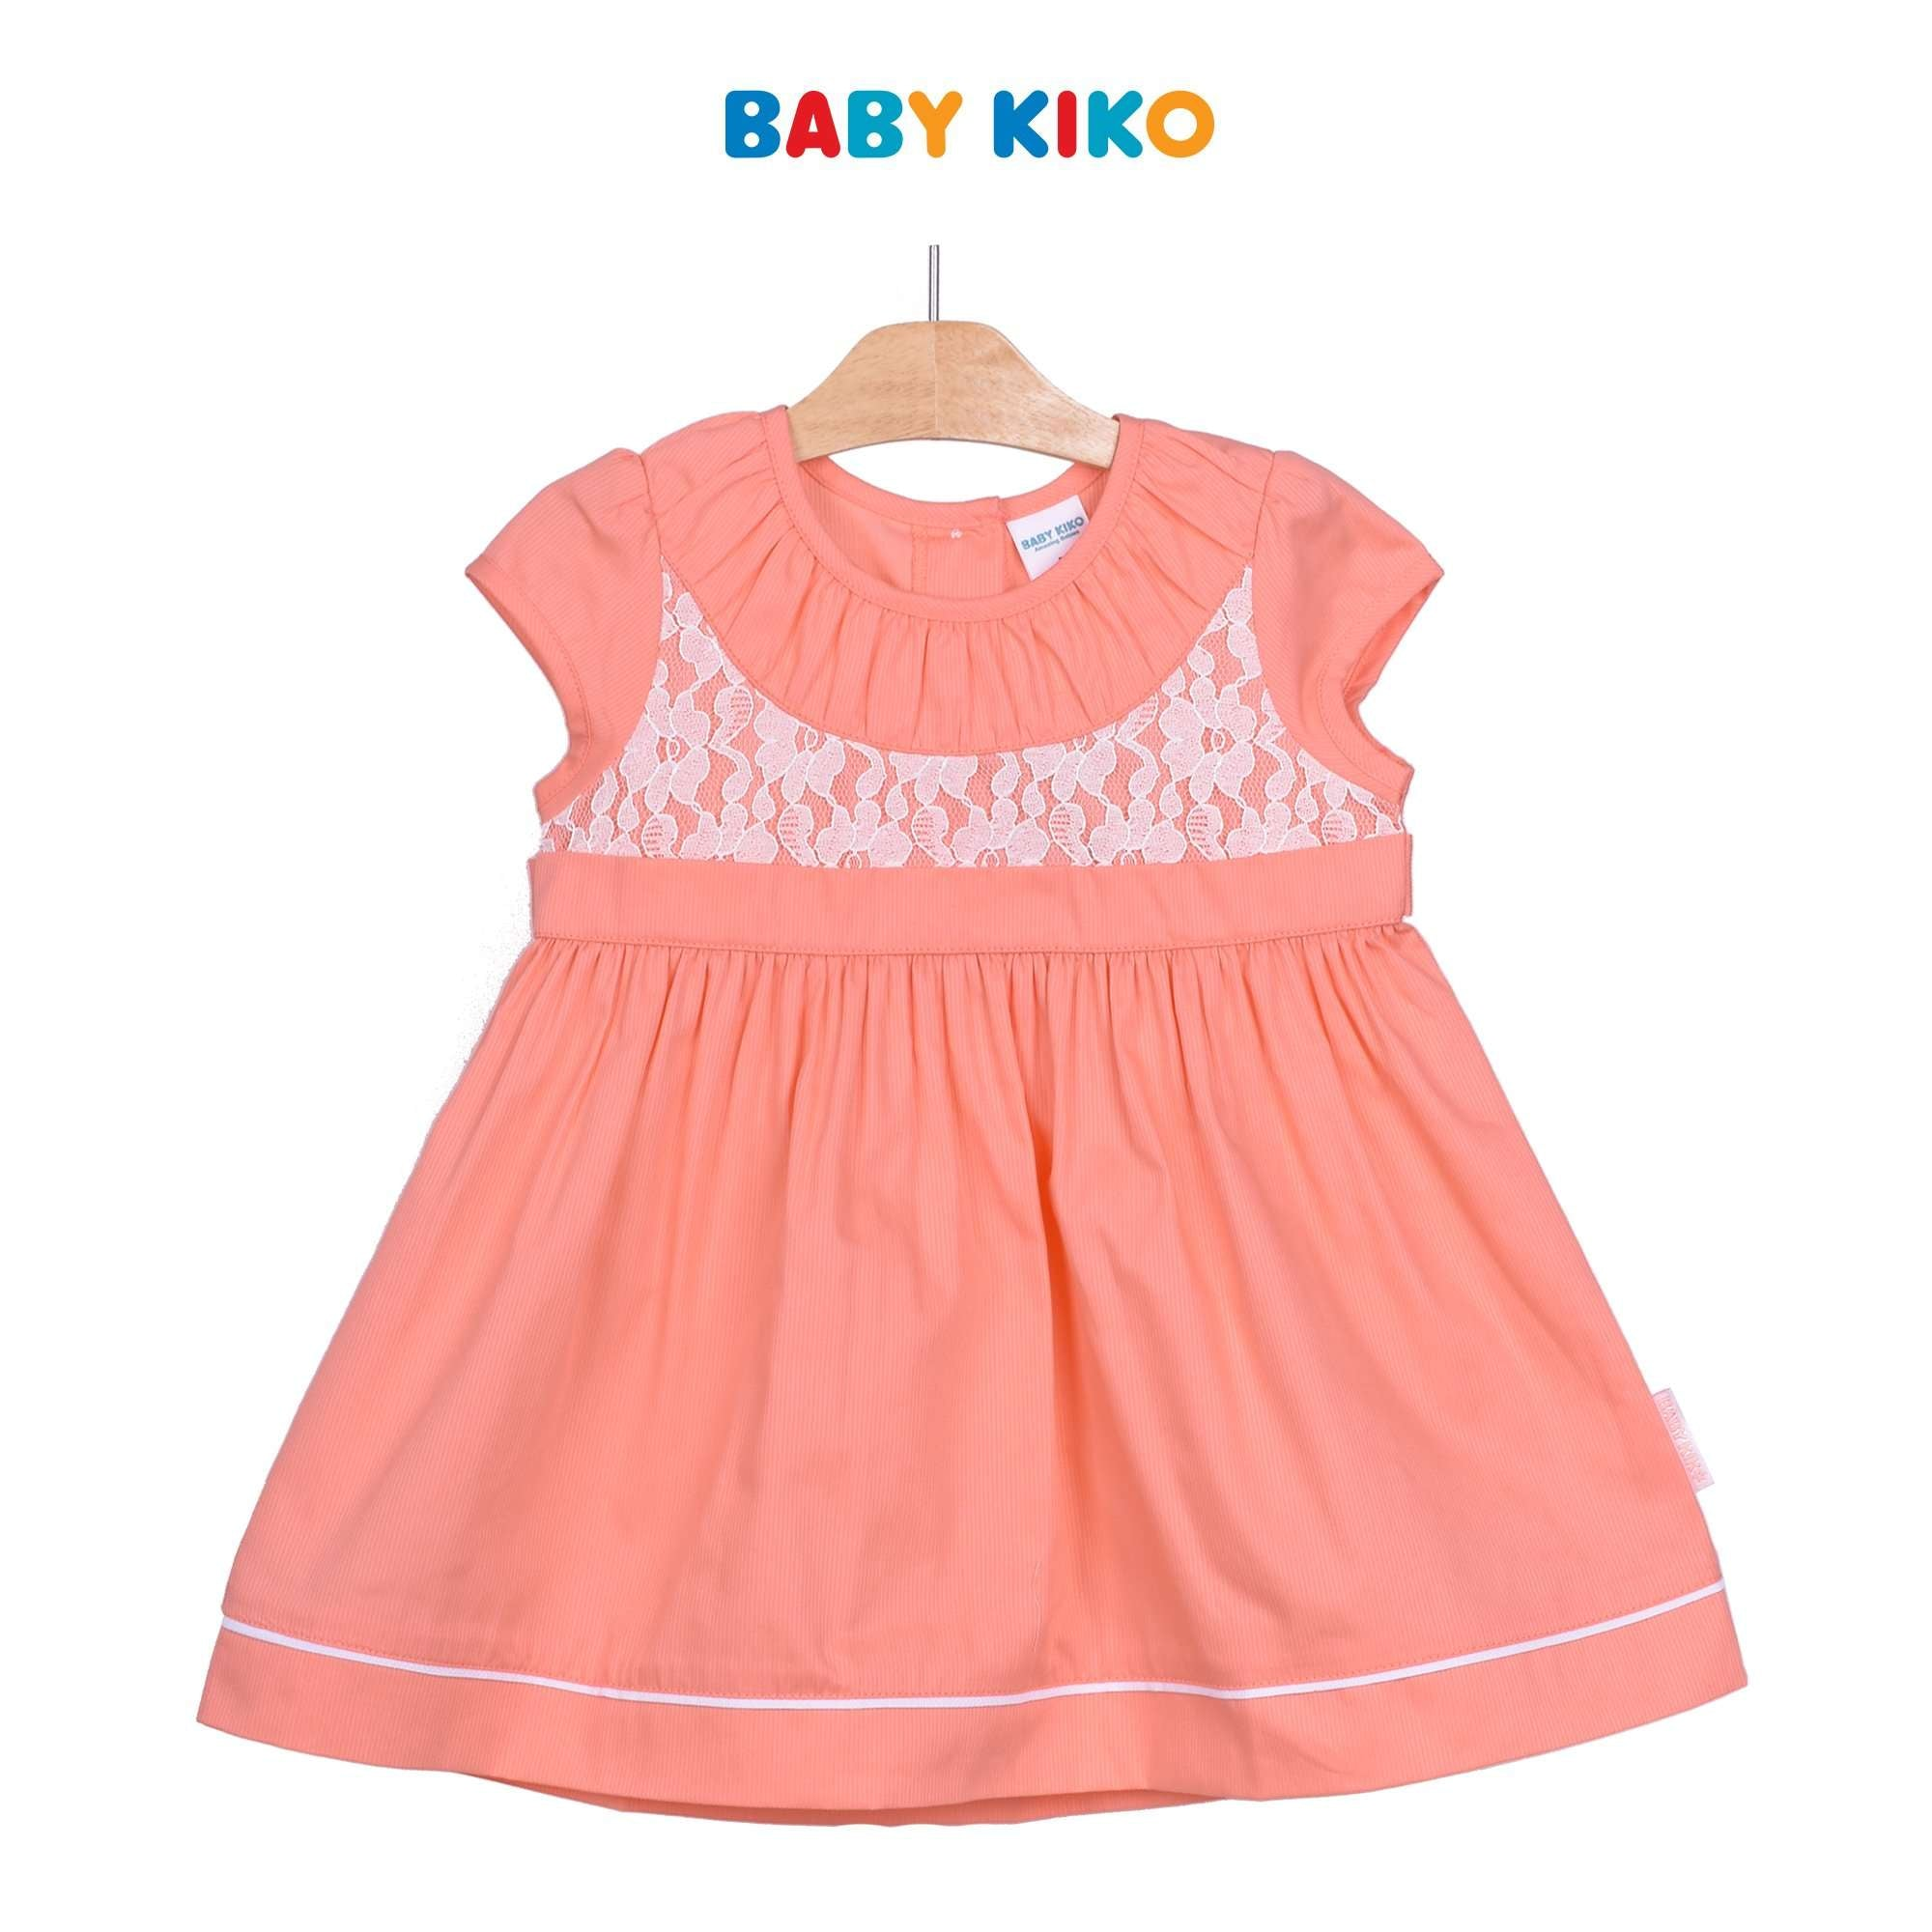 Baby KIKO Toddler Girl Short Sleeve Dress - Peach 315141-312 : Buy Baby KIKO online at CMG.MY